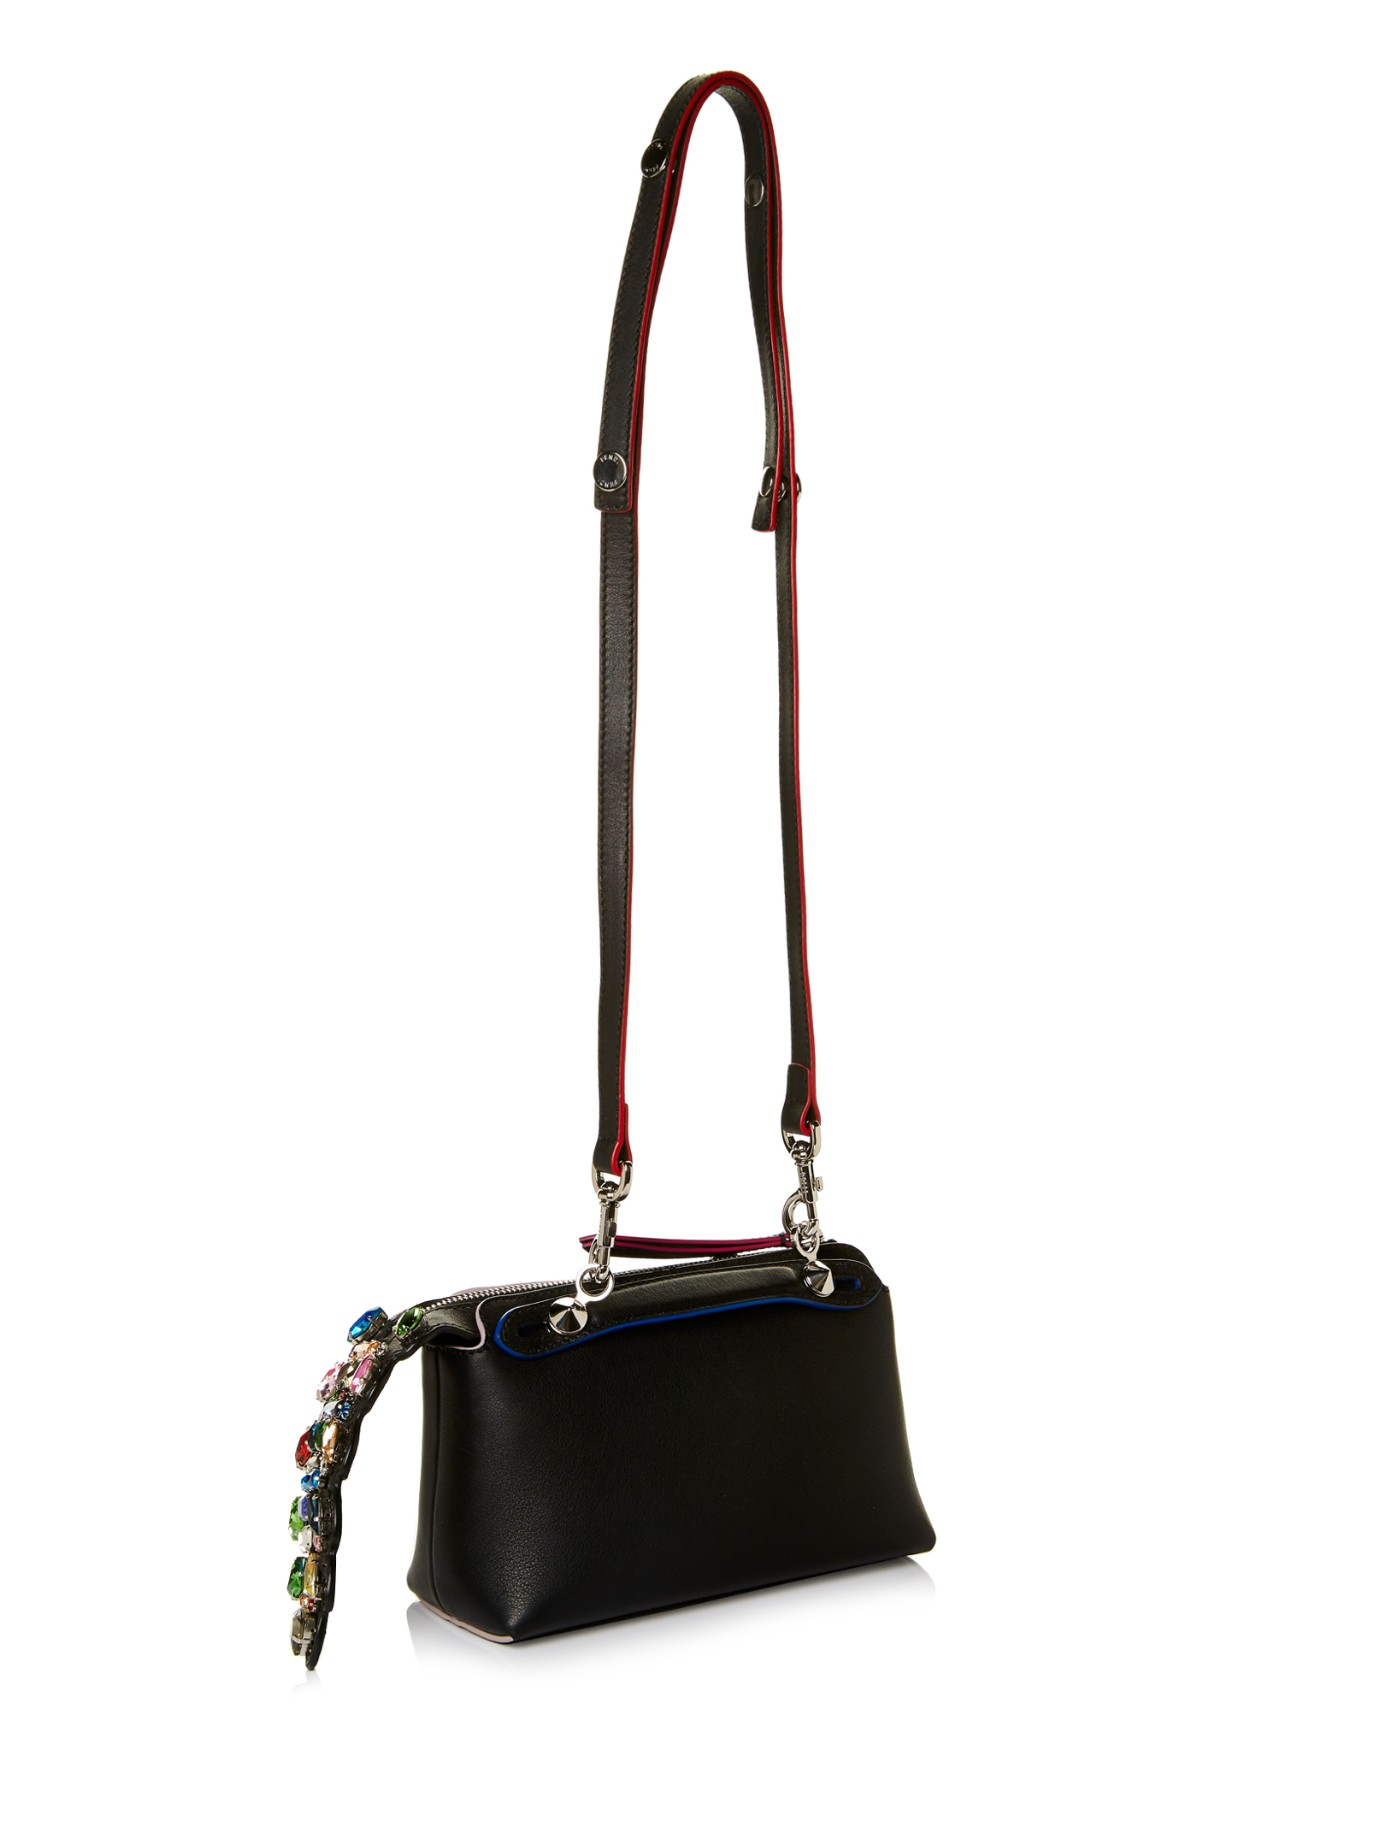 c487673b2d6c Gallery. Previously sold at  MATCHESFASHION.COM · Women s Fendi By The Way  Women s Chloe Cross Body ...